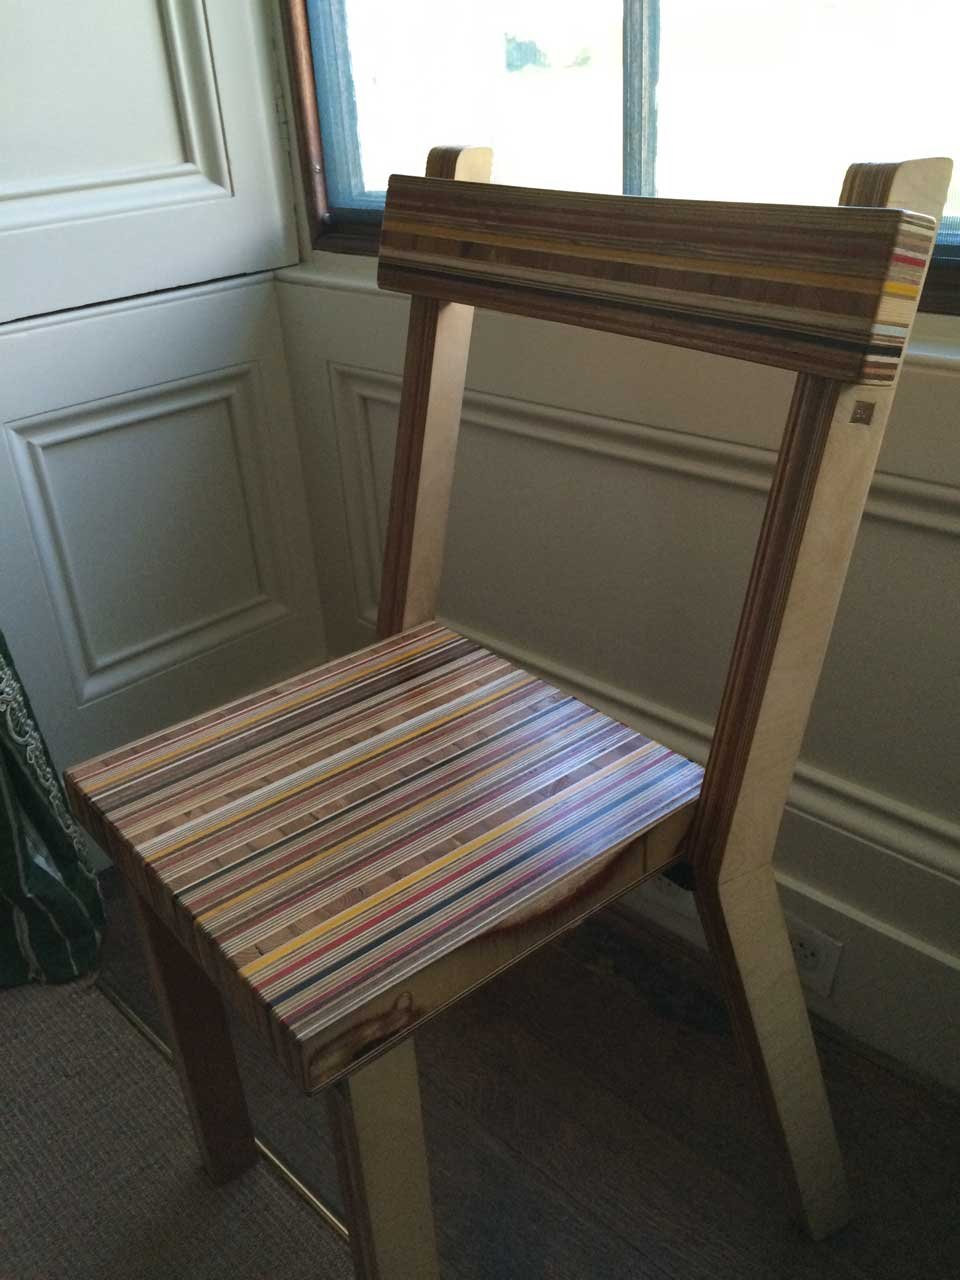 chatsworth-colorful-chair-1